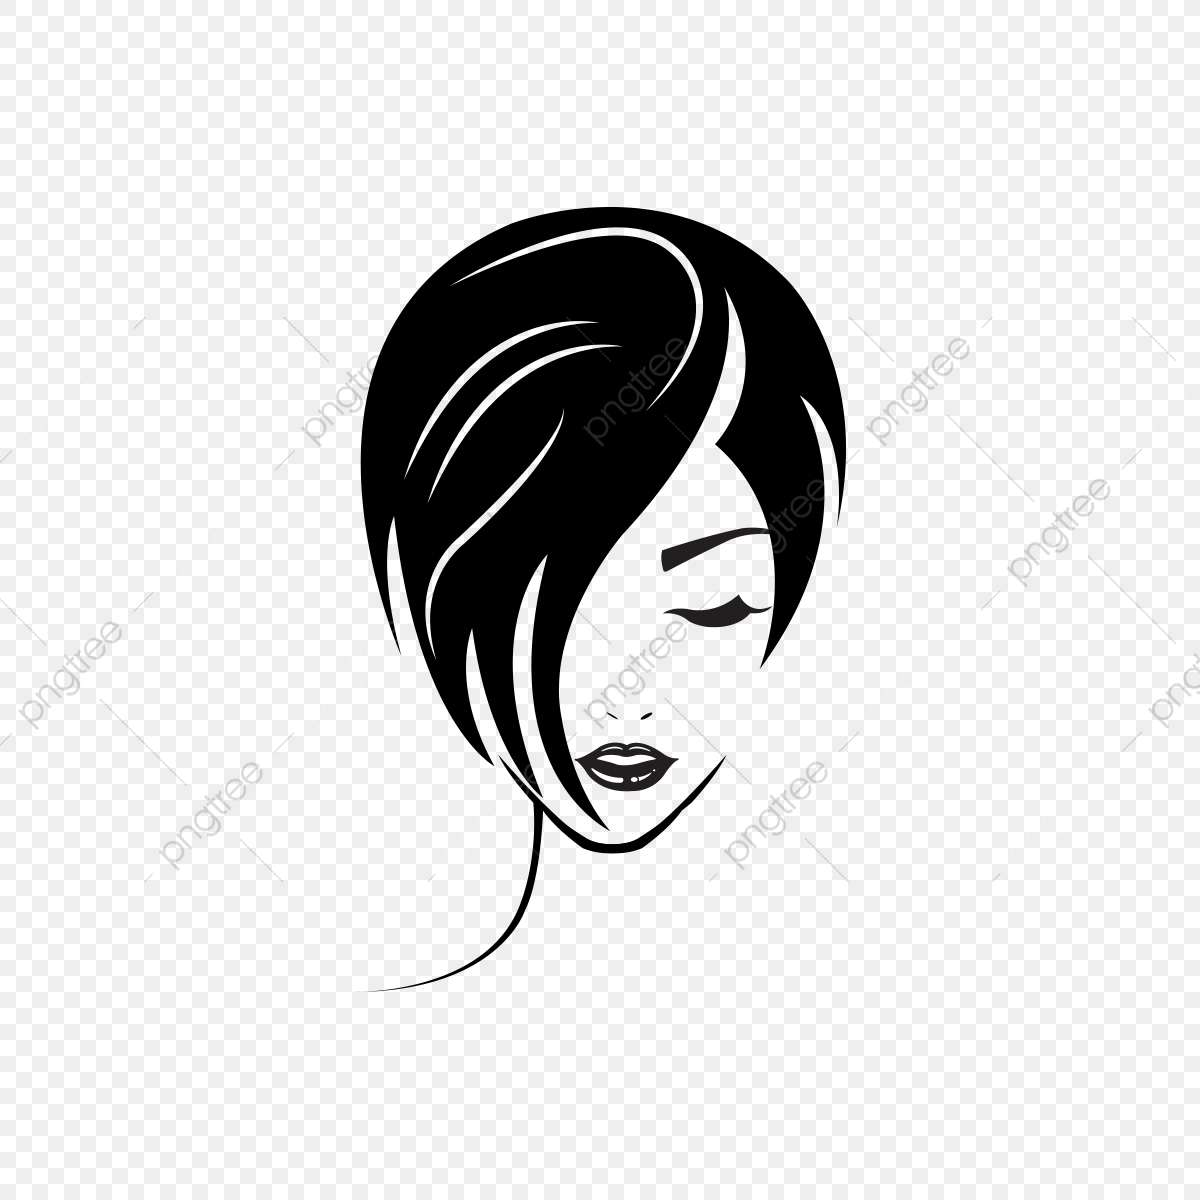 Beautiful Face Png Vector Psd And Clipart With Transparent Background For Free Download Pngtree